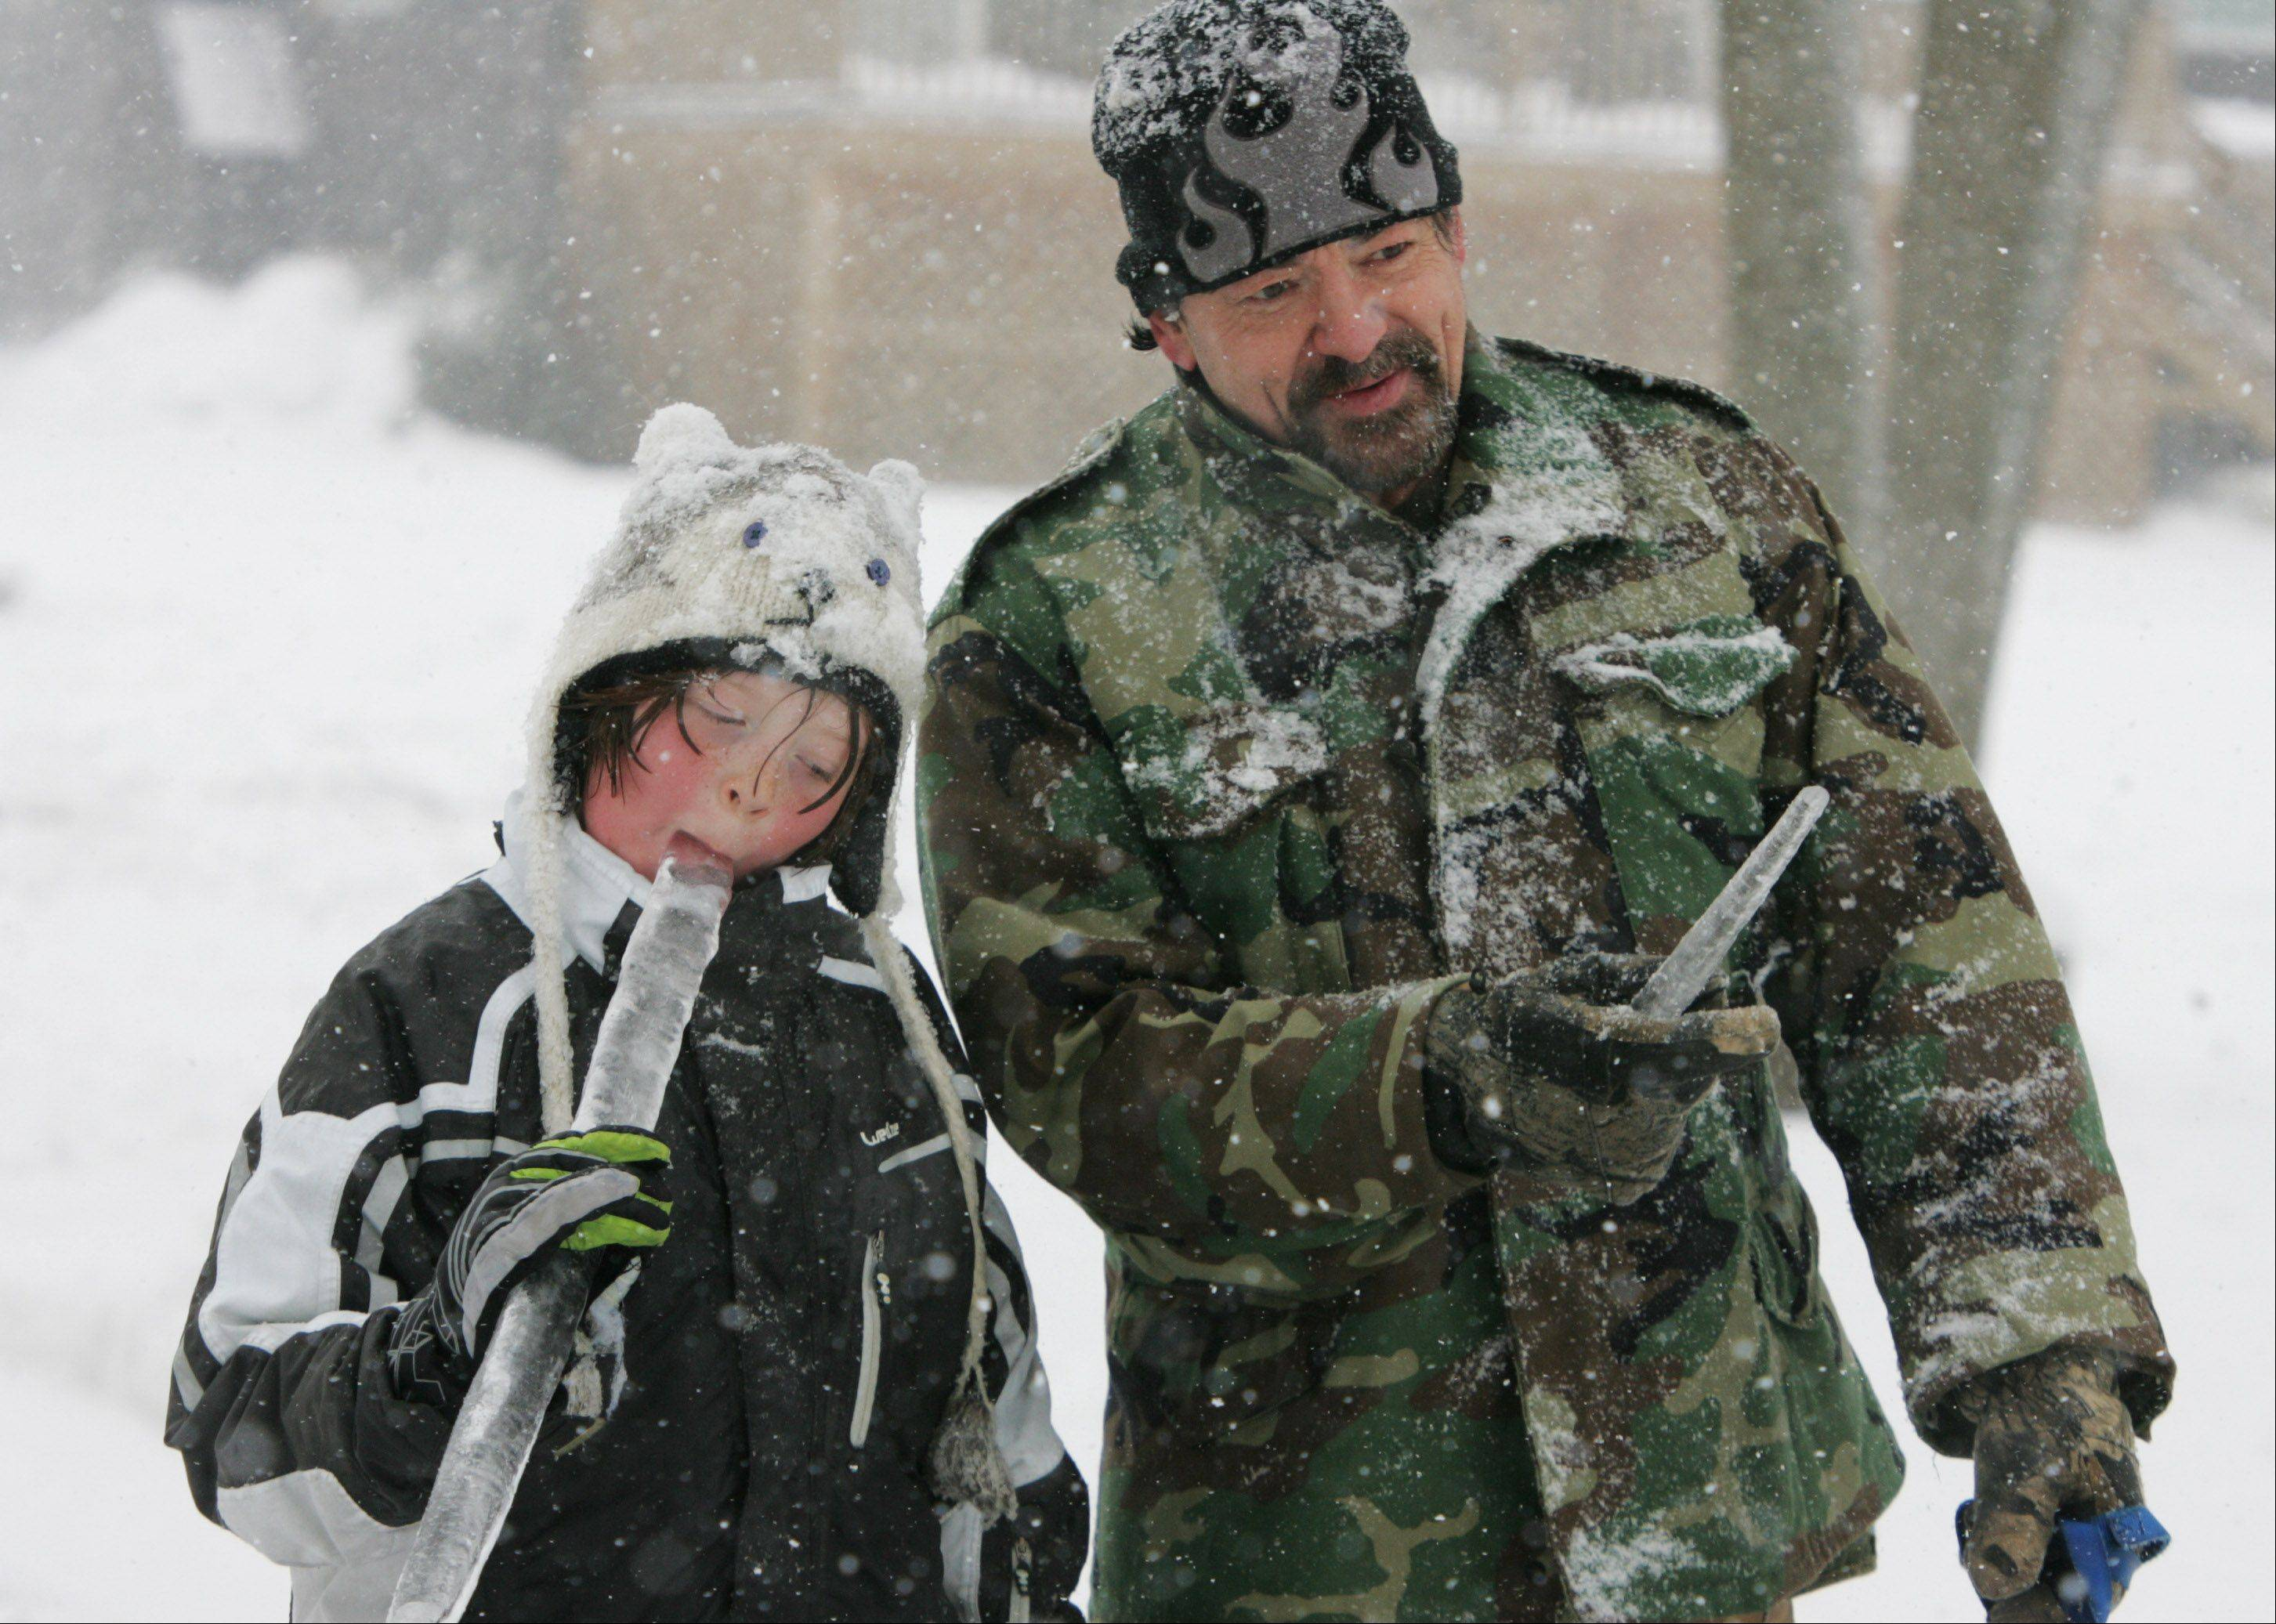 Henry Arimas, of Lake Villa, and his son, Henry Jr., eat icicles while they walk their dog, Amarillo, as snow falls Tuesday in Lake County. The winter storm caused schools and some businesses to close for the day.